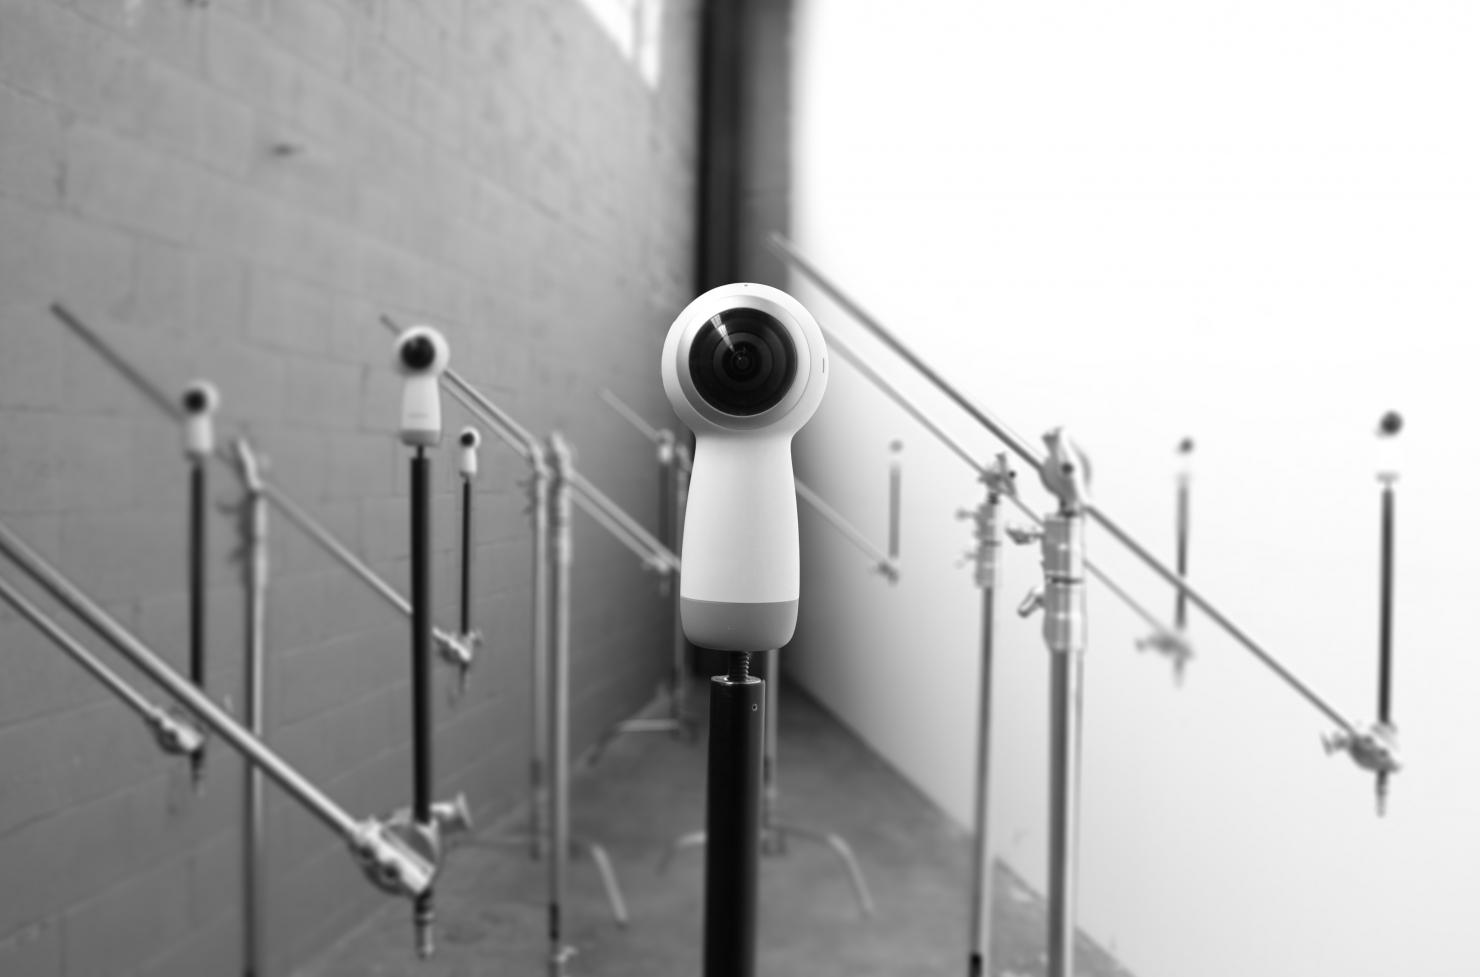 Several cameras that appear to be futuristic are poised to look straight on a the viewer